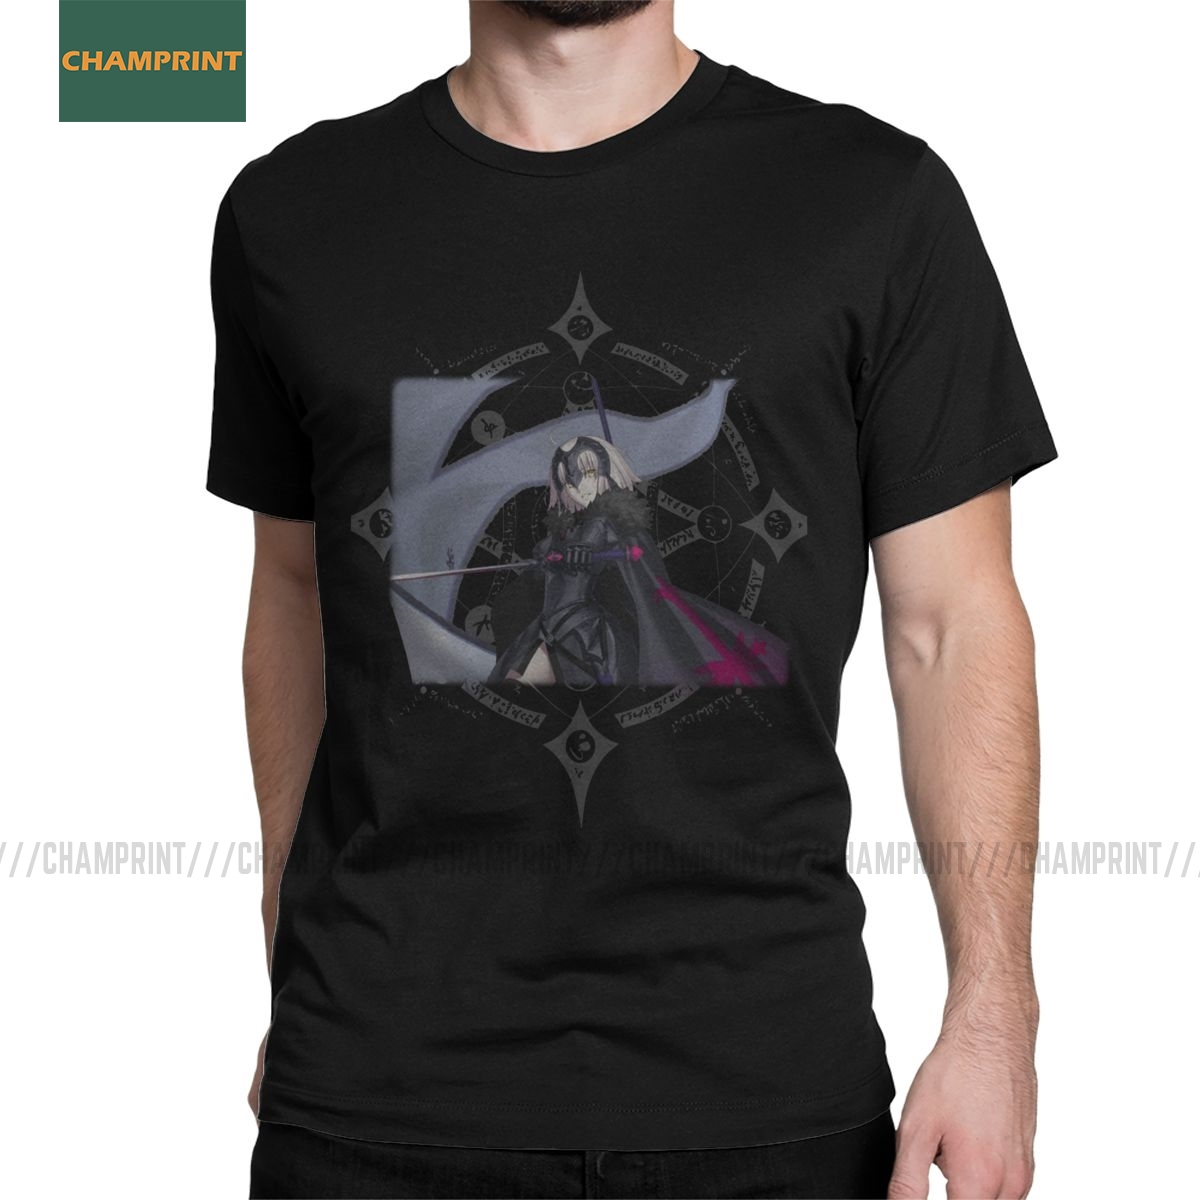 Jeanne Alter Fate Grand Order T Shirt Men's Cotton Vintage T-Shirts Anime Saber Quick Star Attack Tee Short Sleeve Big Size